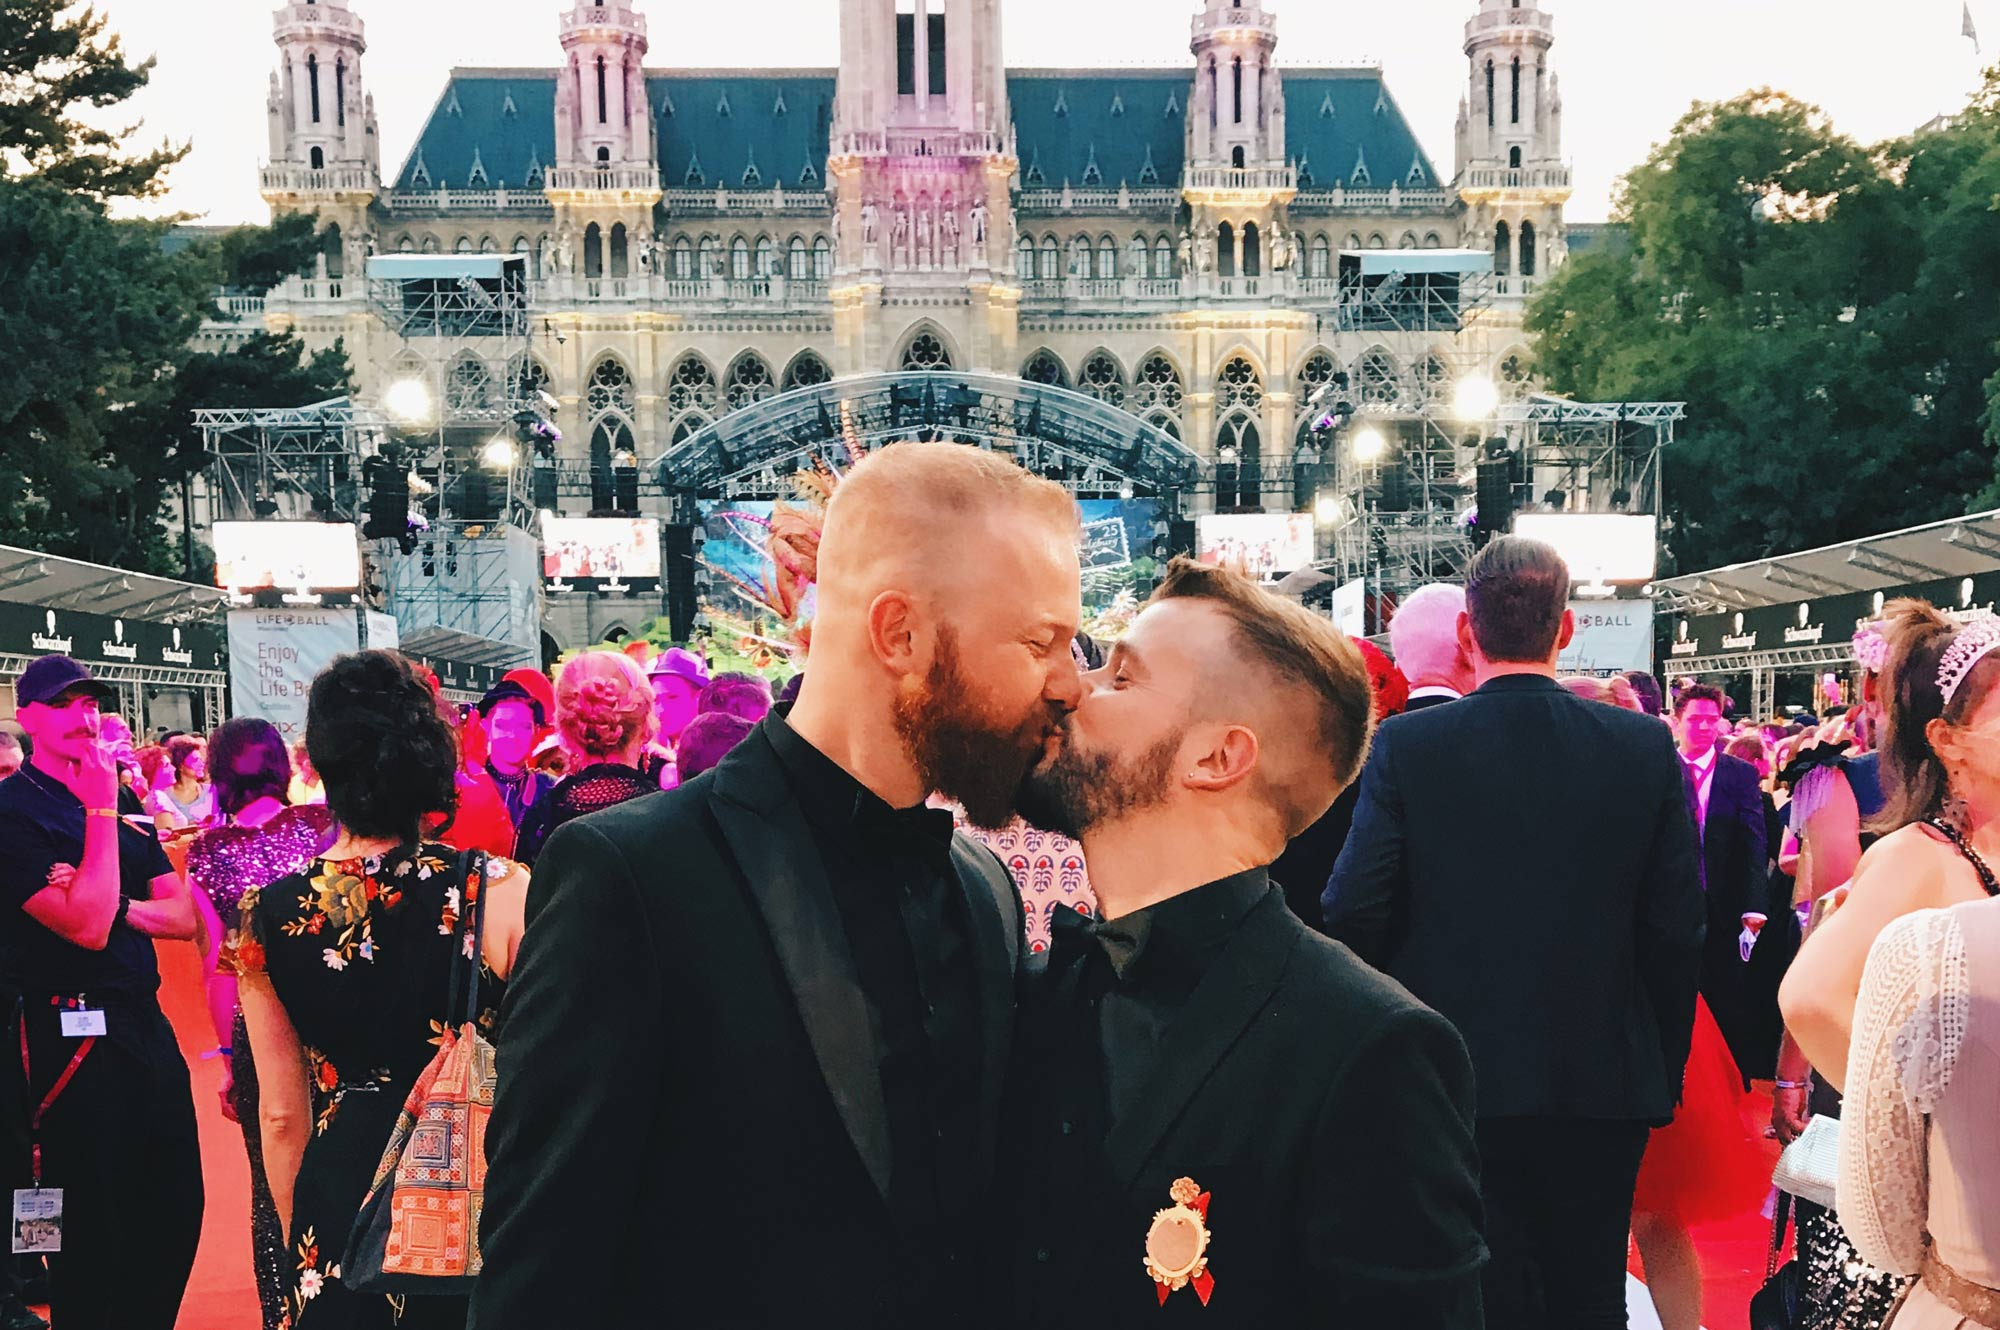 Gay Kiss on the red carpet of the AIDS Charity Gala | The 25th Life Ball Vienna Austria © Coupleofmen.com